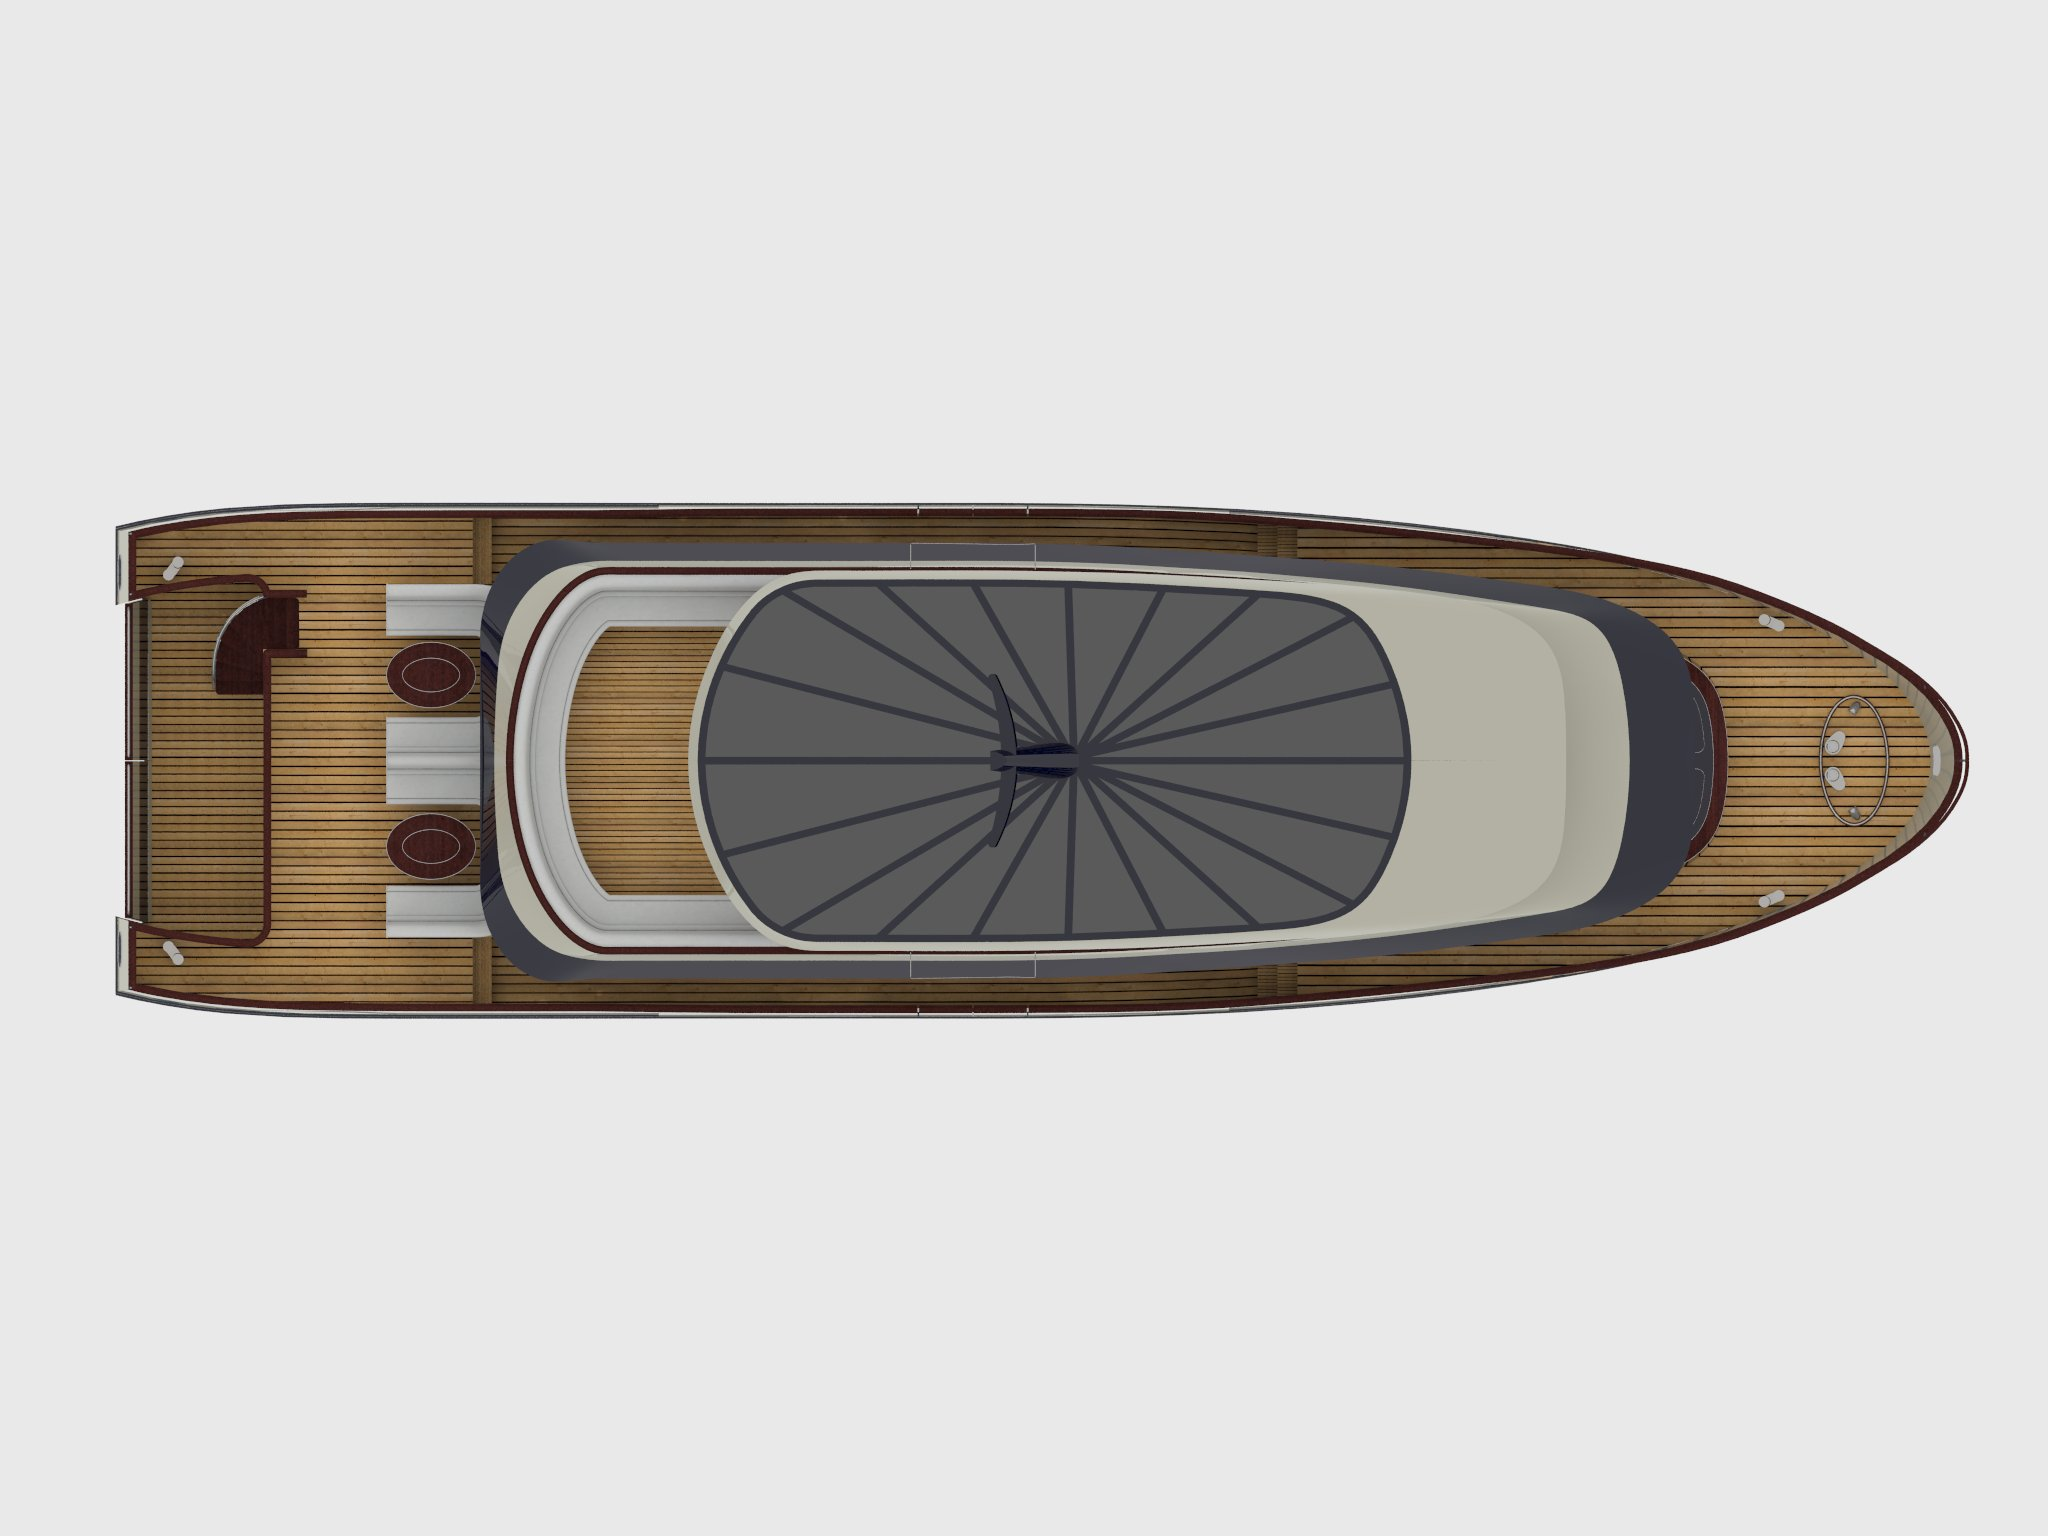 24m fishing motor boat - top view